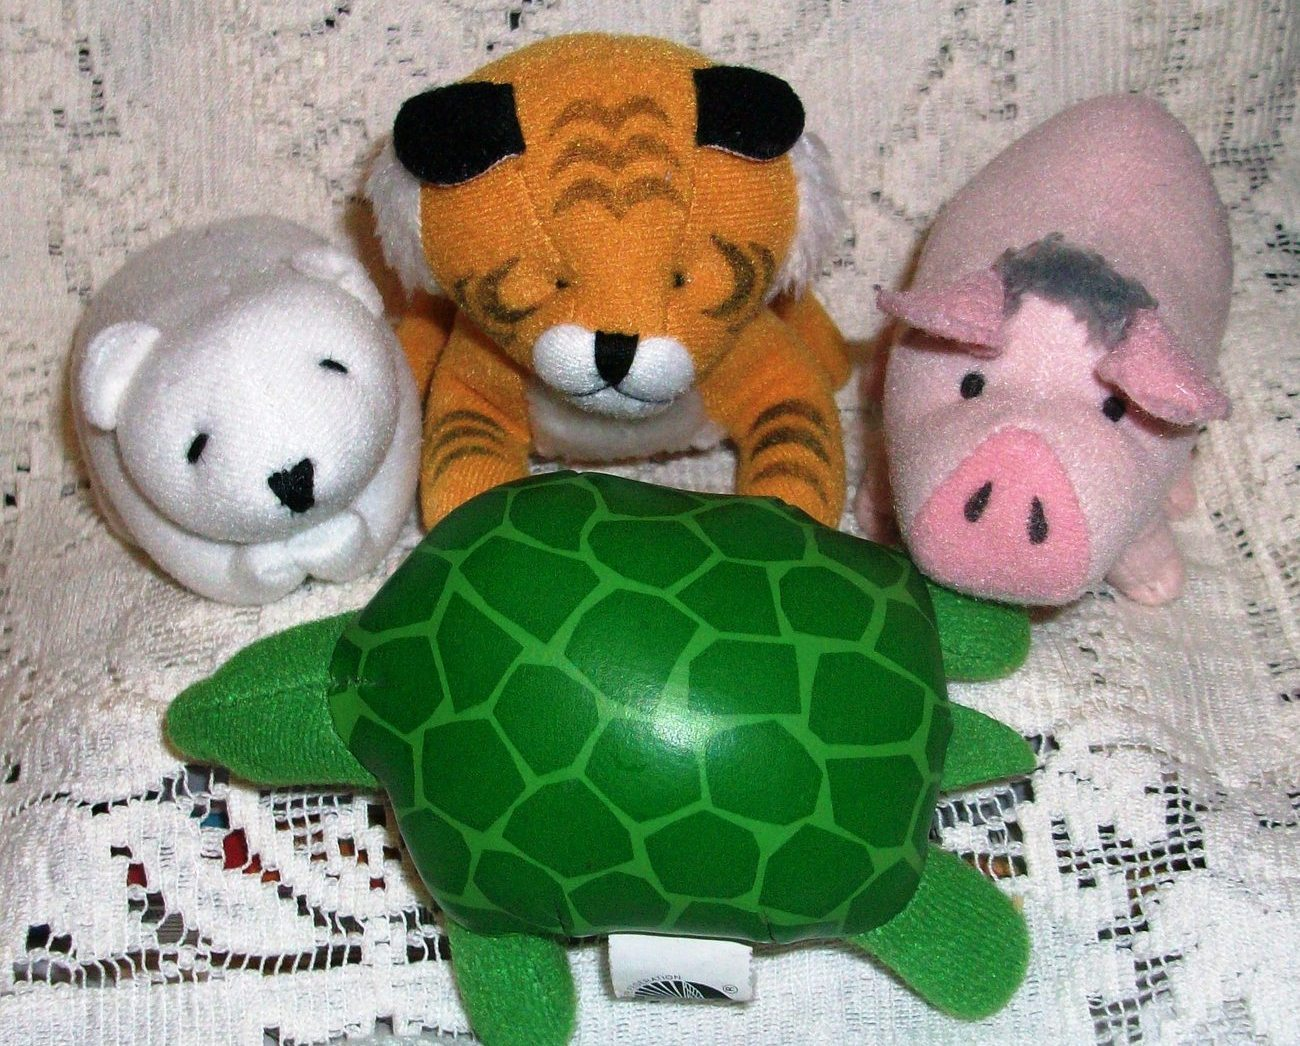 4 McDonalds Happy Meal Toys Stuffed Lion Babe Turtle Polar Bear Wildlife